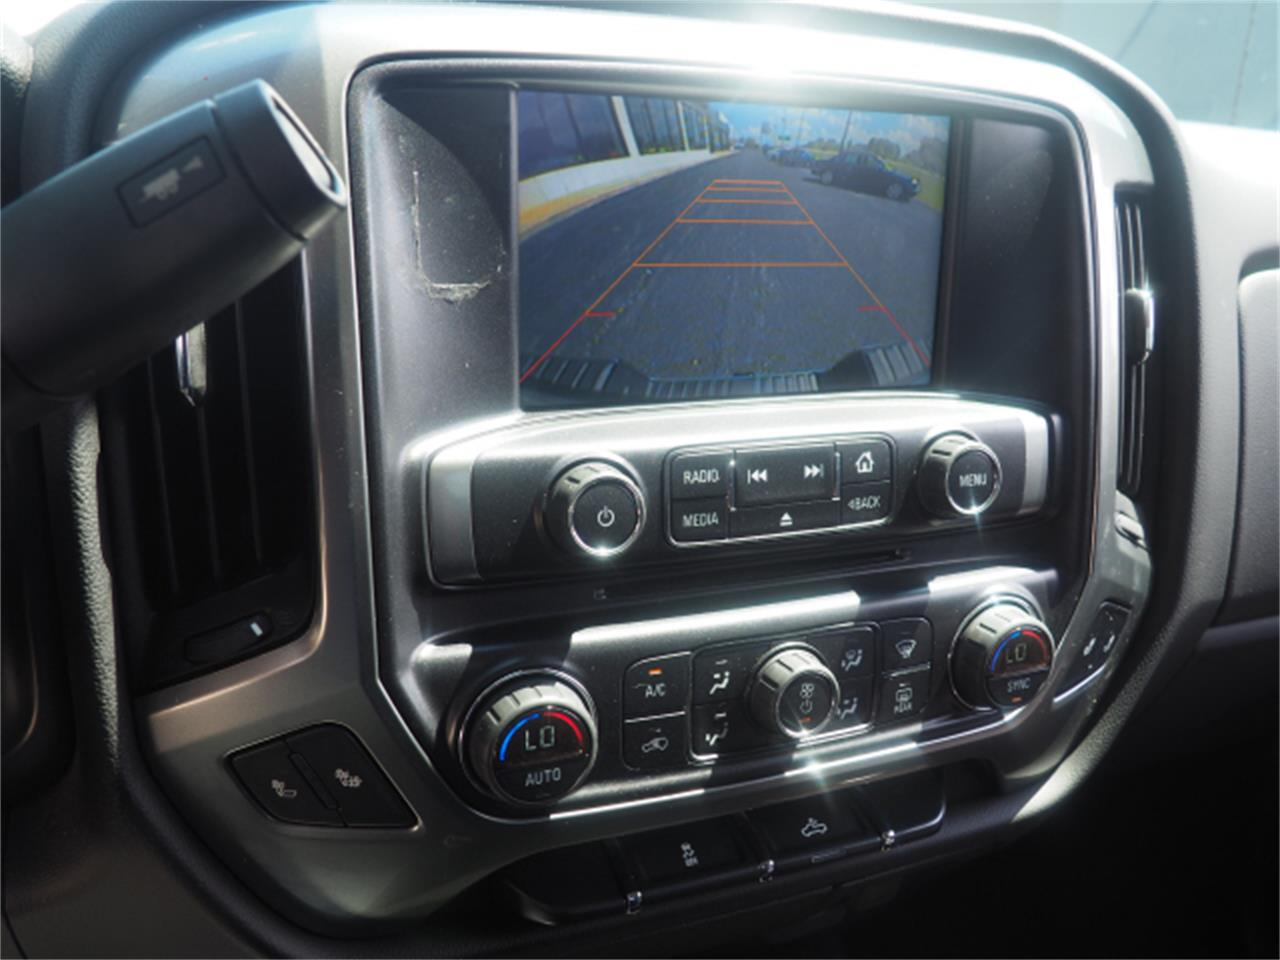 2015 Chevrolet Silverado For Sale Cc 1128071 Chevy Radio Upgrade Large Picture Of Offered By Nelson Automotive Ltd O6fb